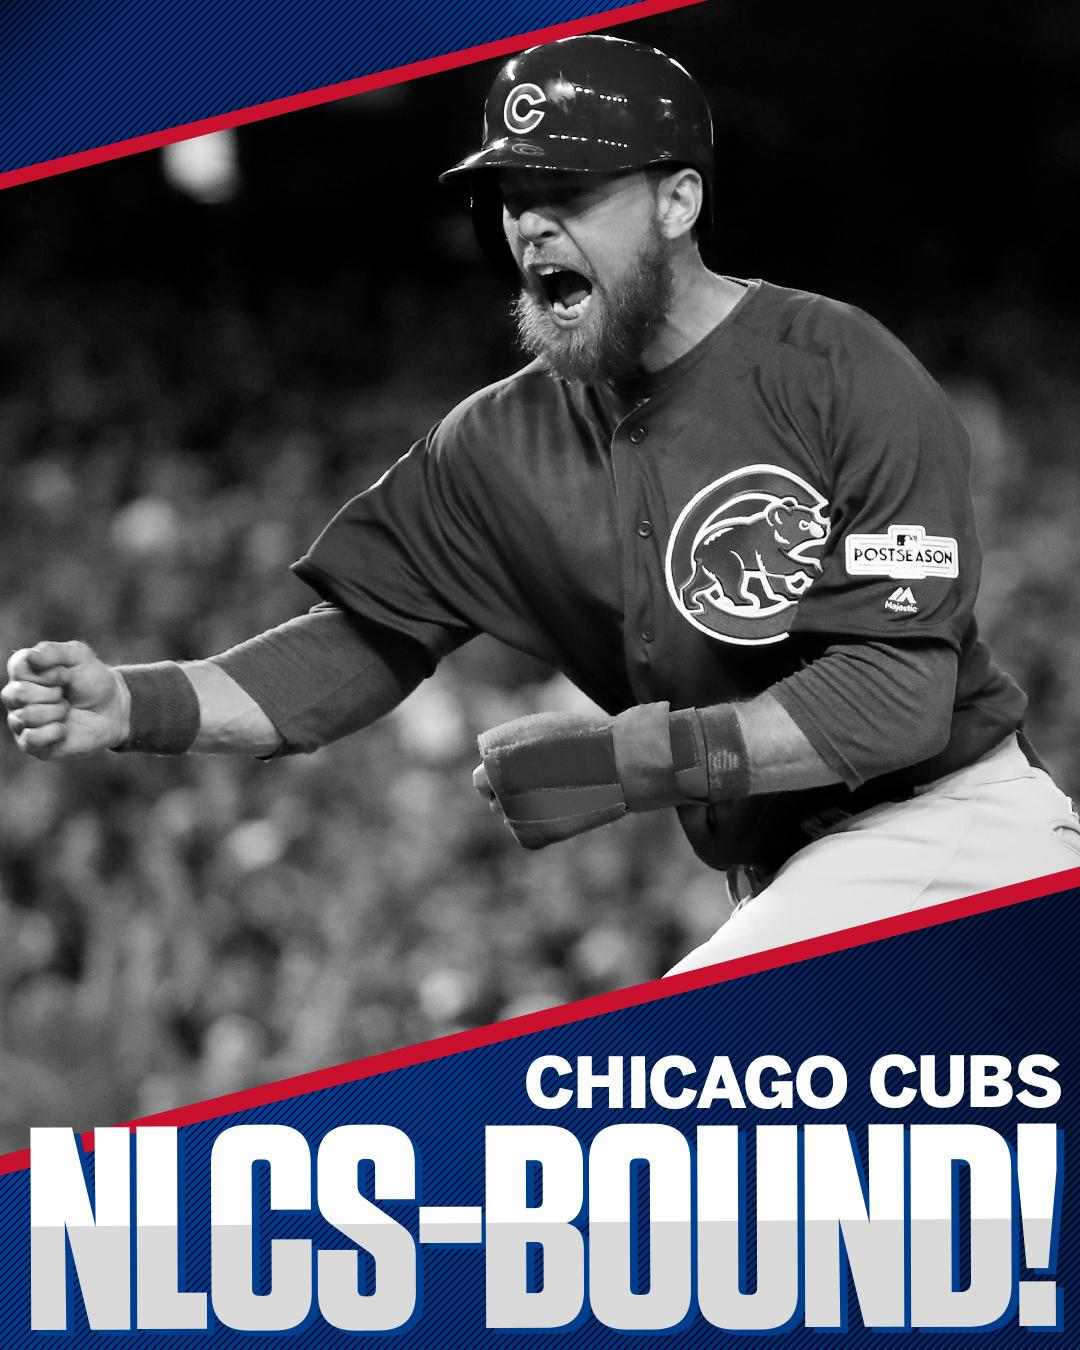 Fly the W!  The Cubs are headed to the NLCS for the 3rd straight season. https://t.co/fDJD7MyQTe